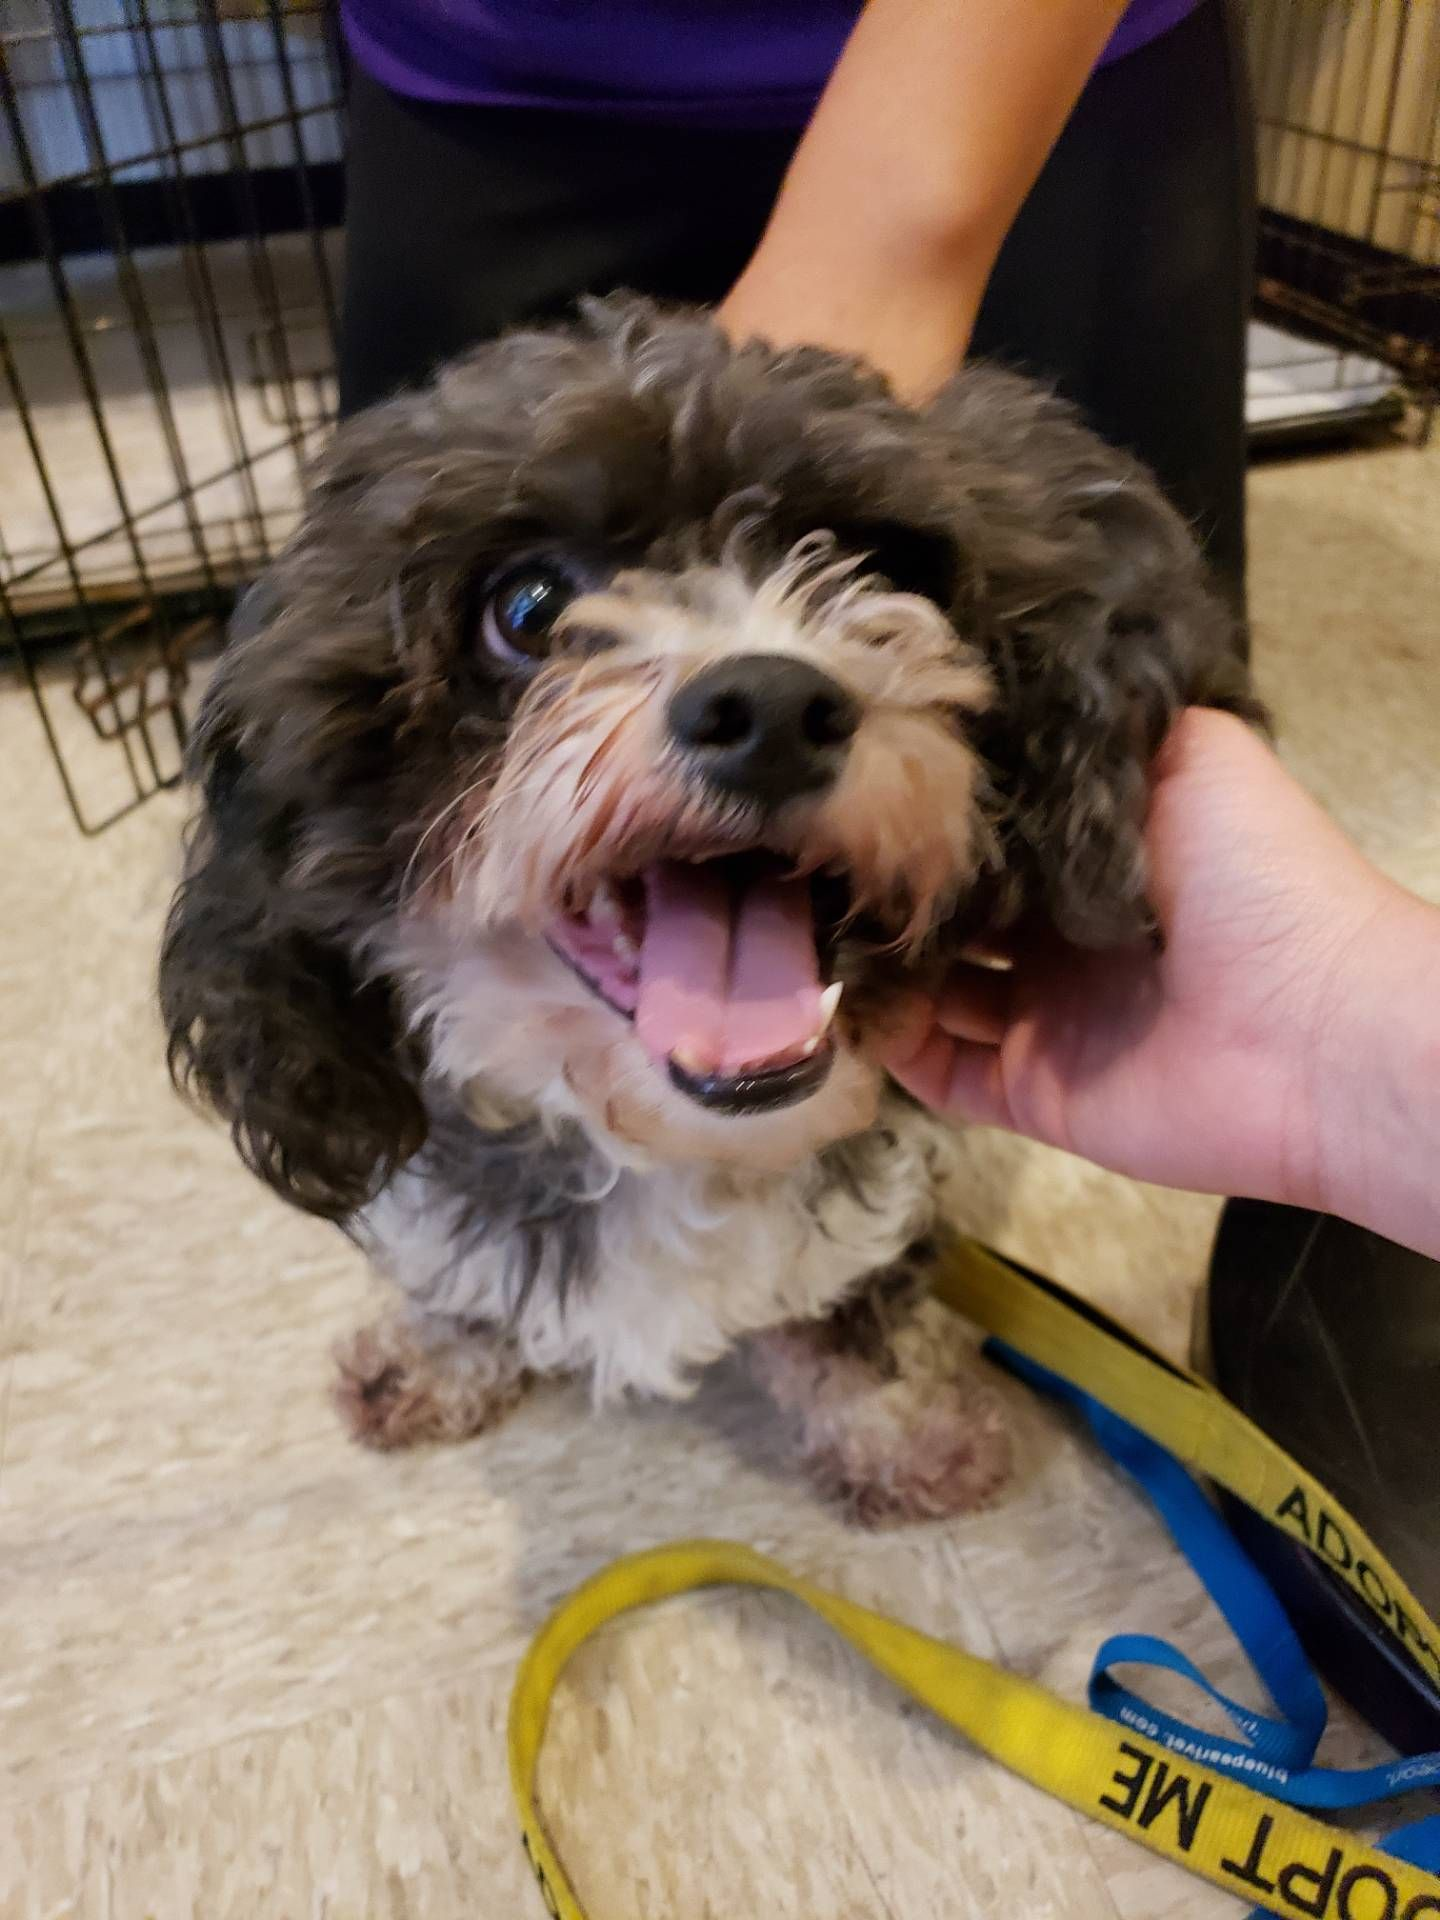 Adopted 2 Year Old Poodle Mix Puppy Was Found As A Stray And Needs